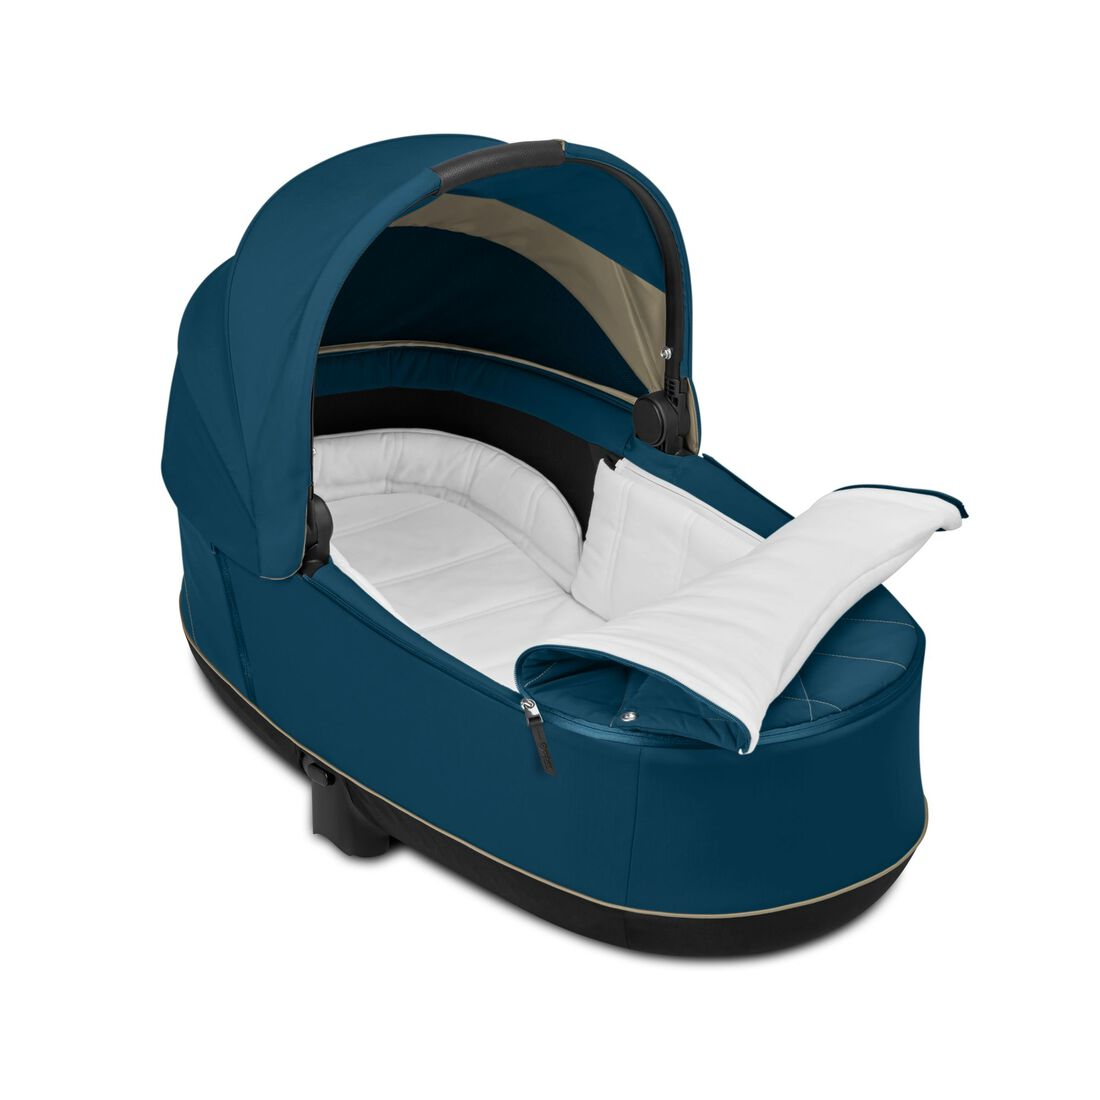 CYBEX Priam Lux Carry Cot - Mountain Blue in Mountain Blue large Bild 3